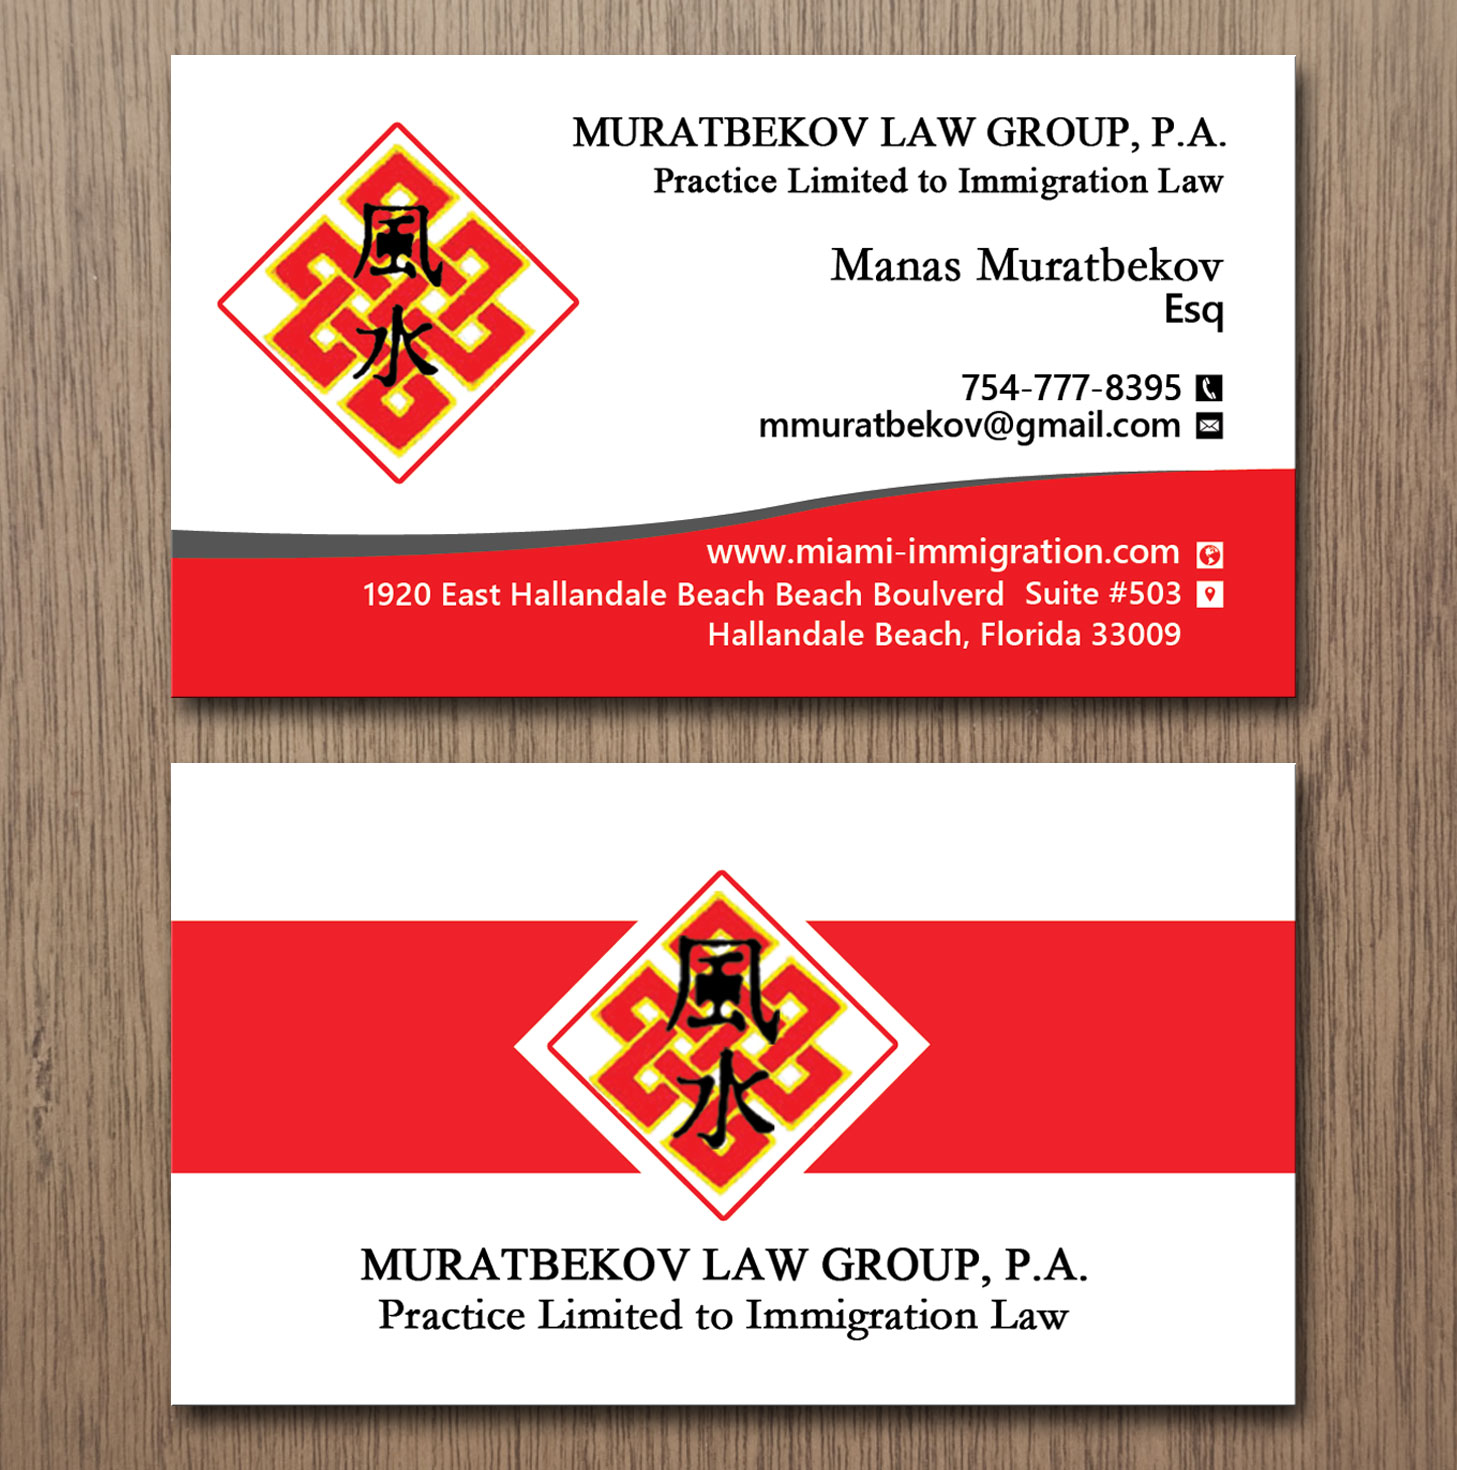 Professional masculine business card design for muratbekov law business card design by lanka ama for feng shui business card for immigration law firm colourmoves